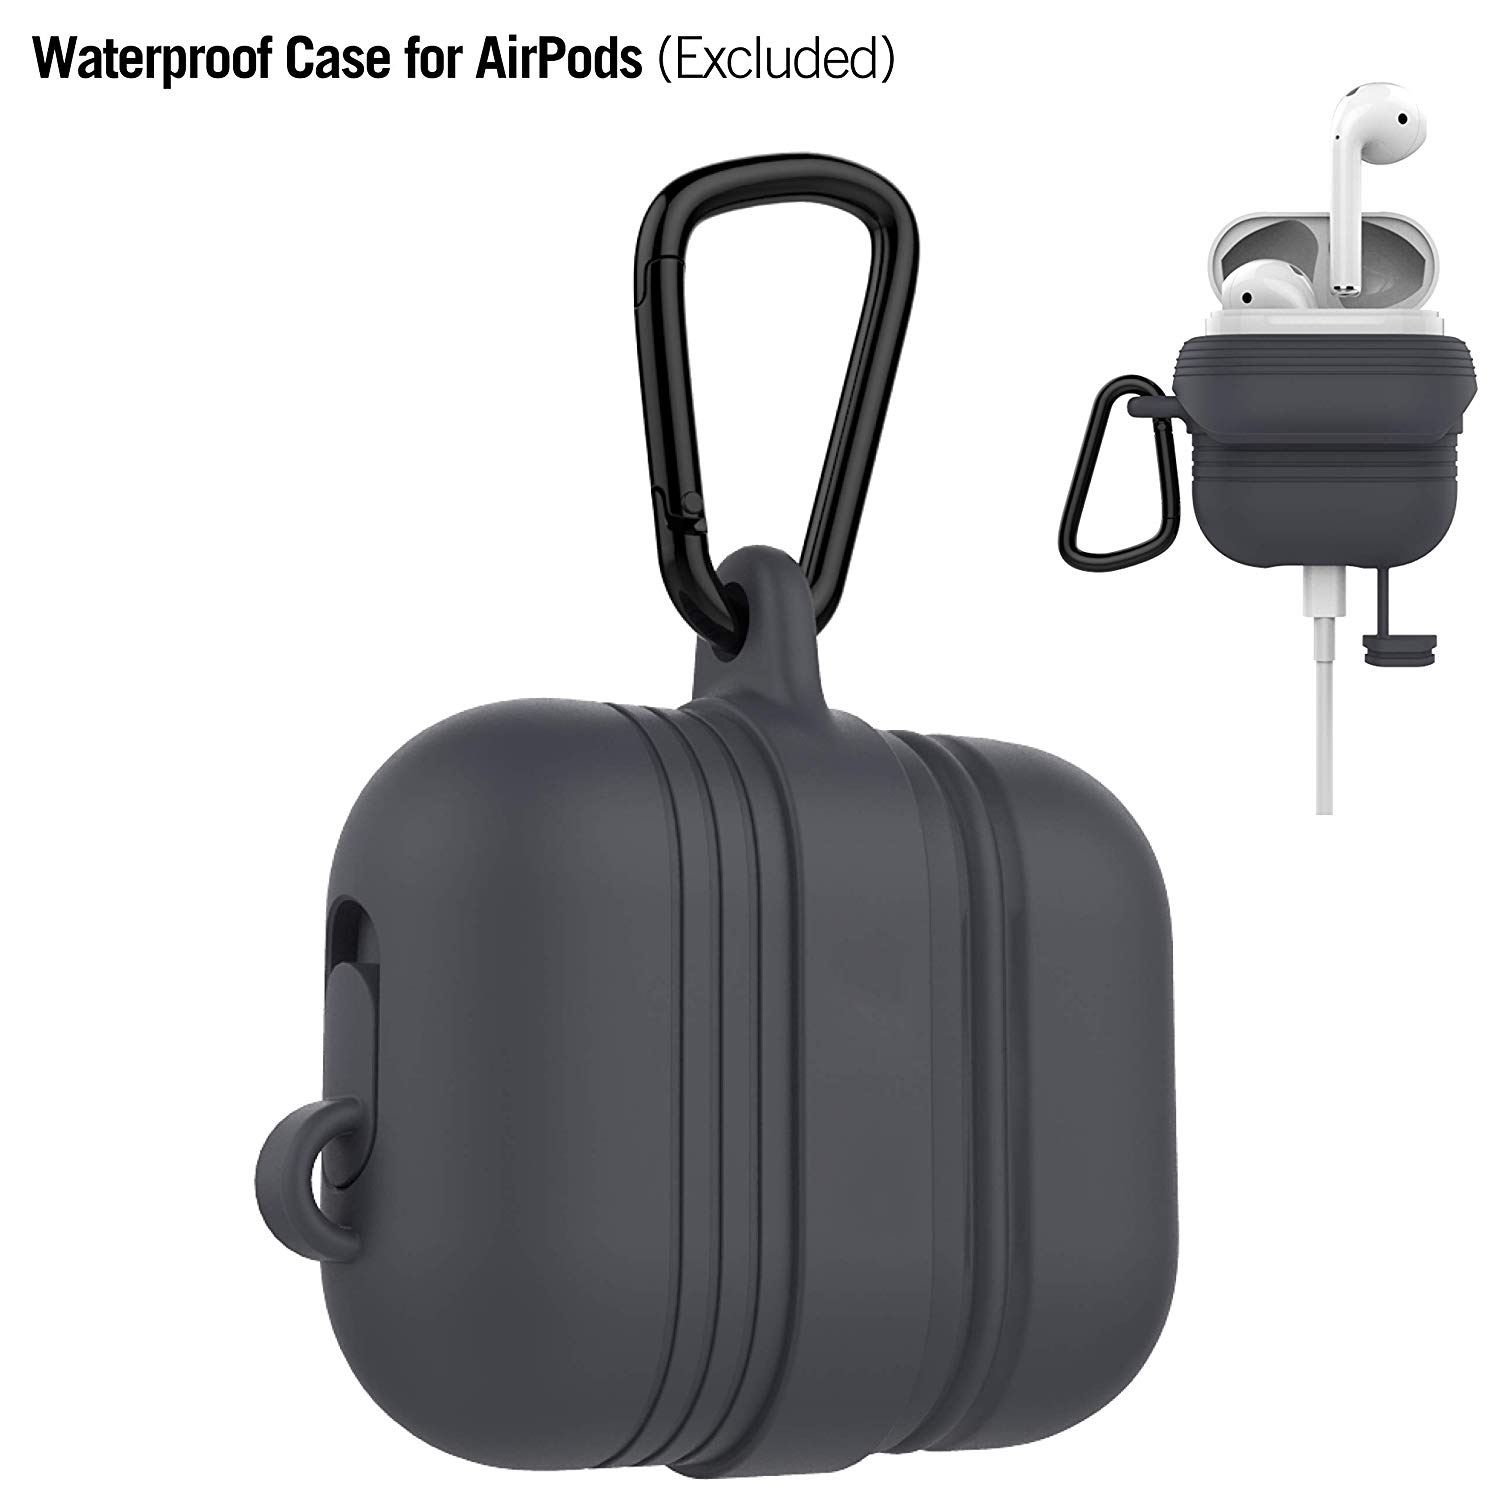 Waterproof AirPods Case